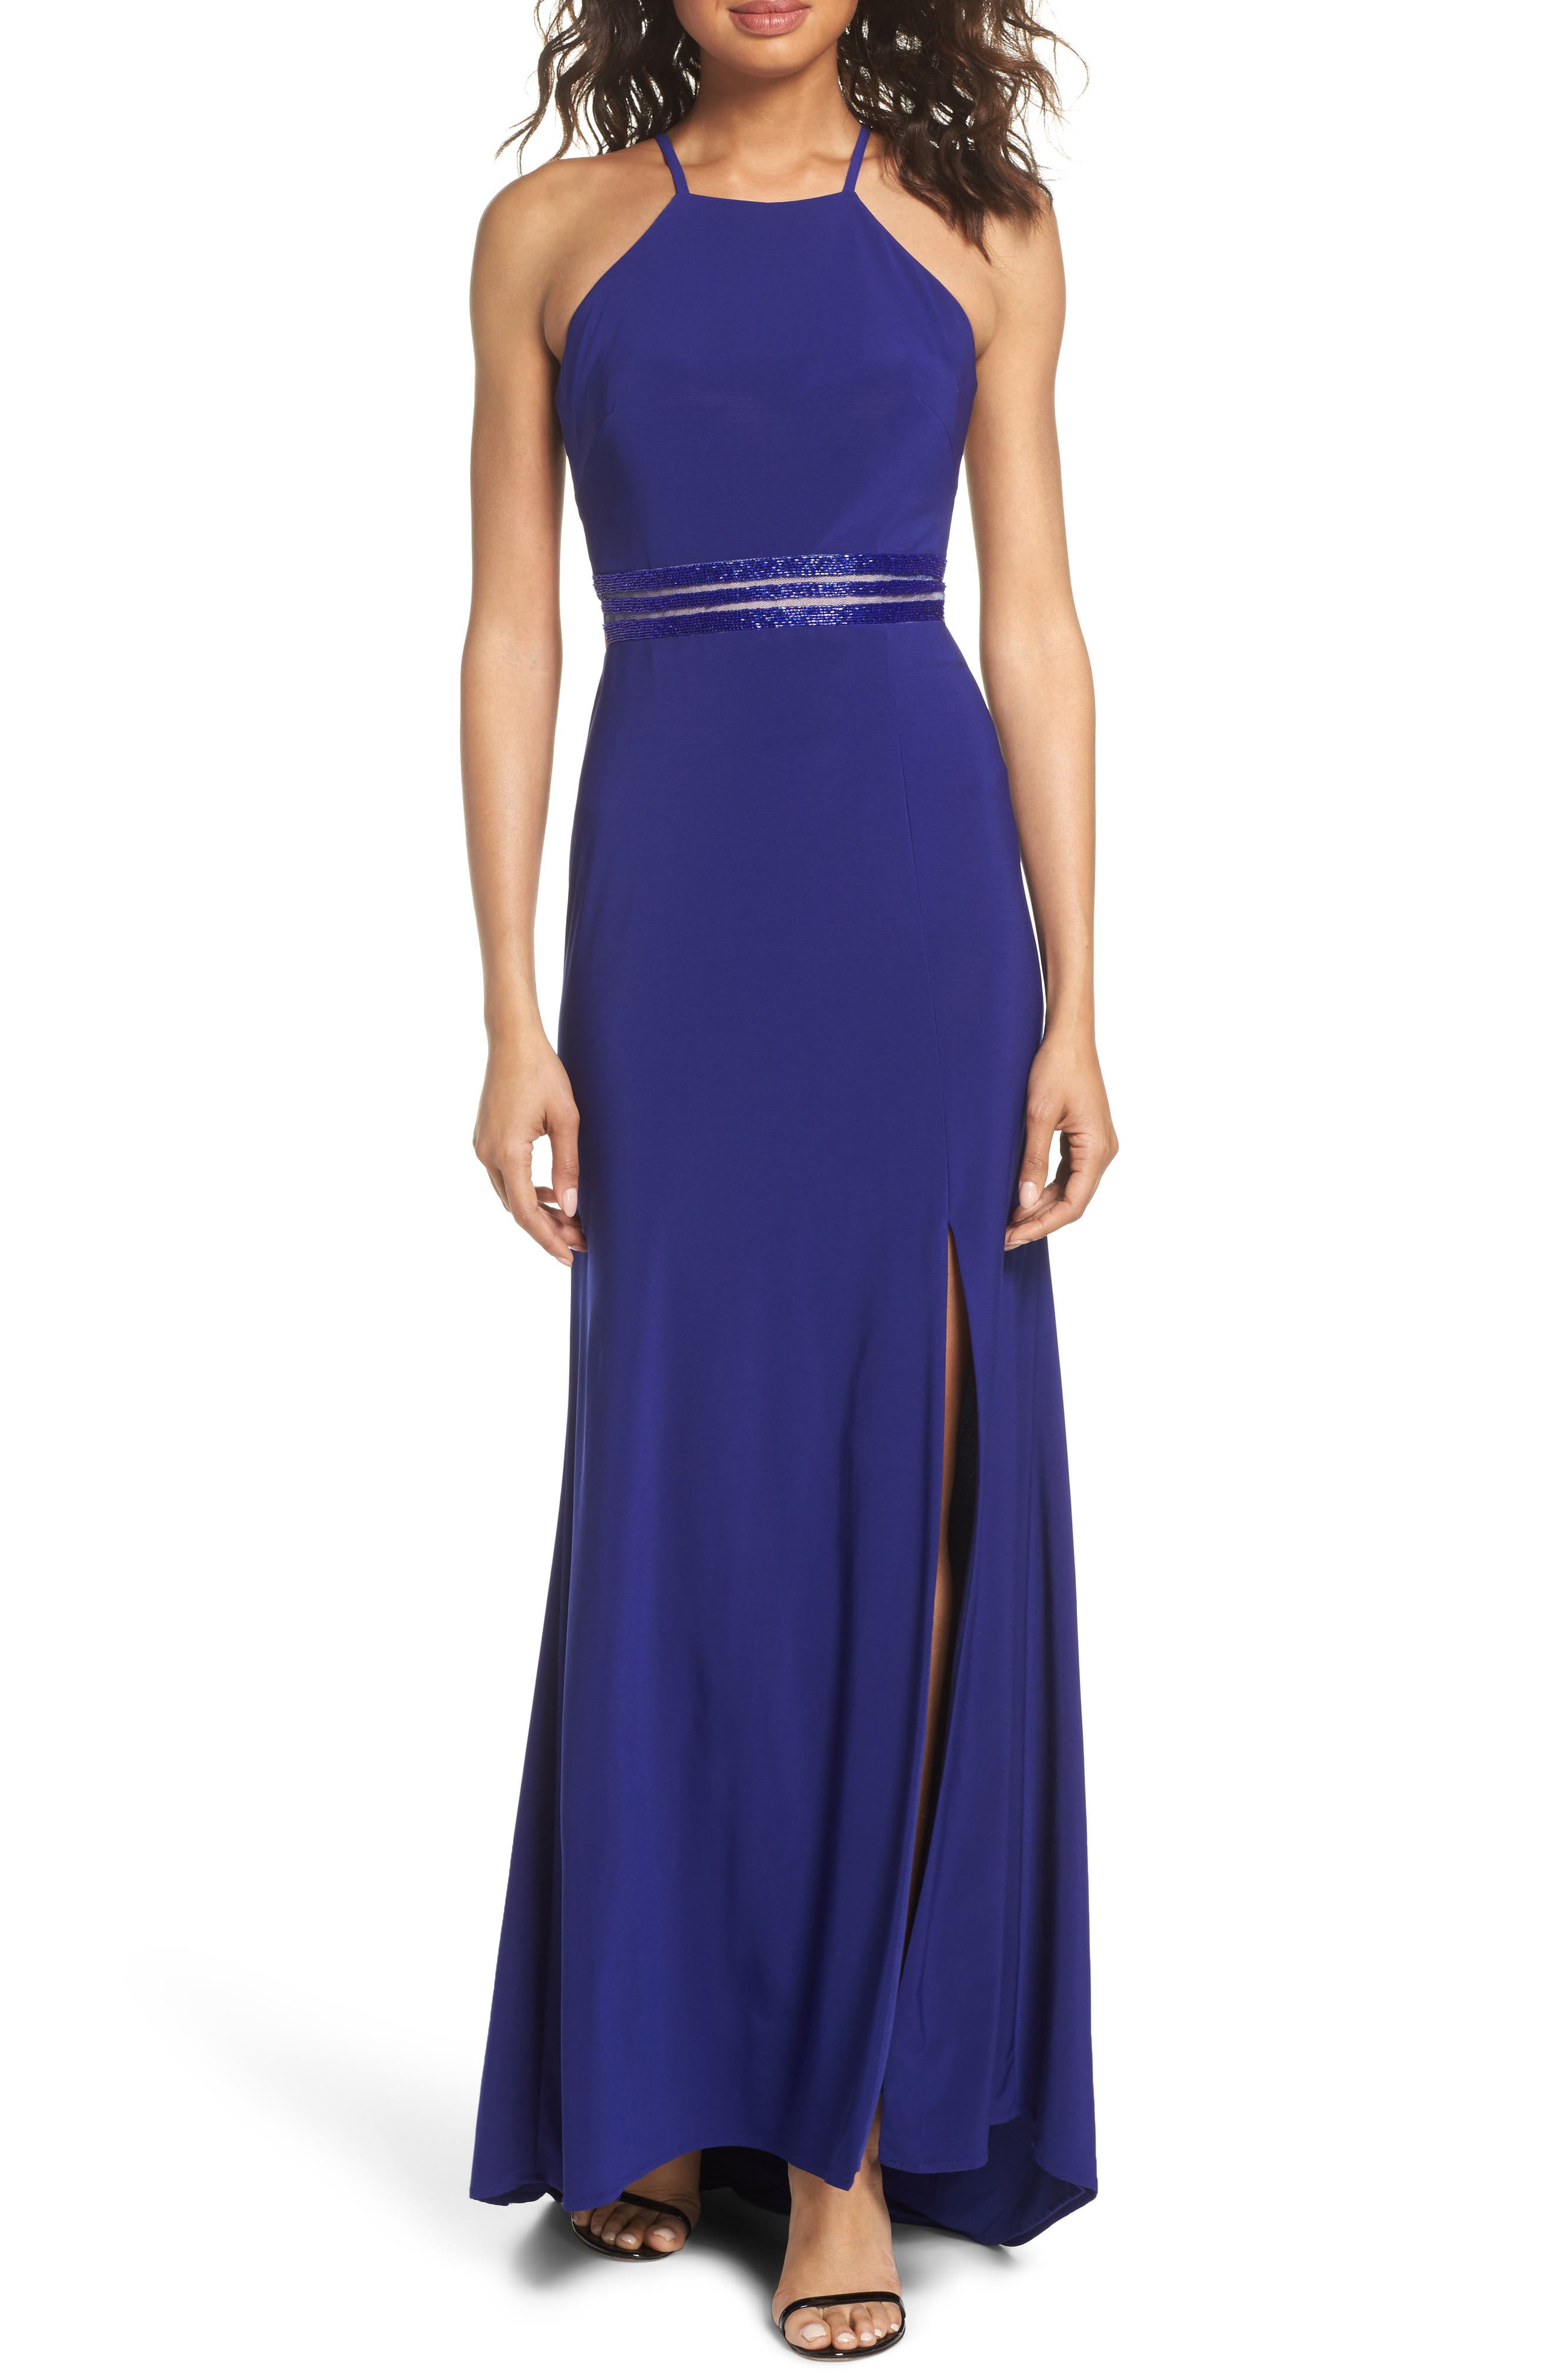 Morgan & Co. Beaded Mesh Halter Gown, /4 - Blue